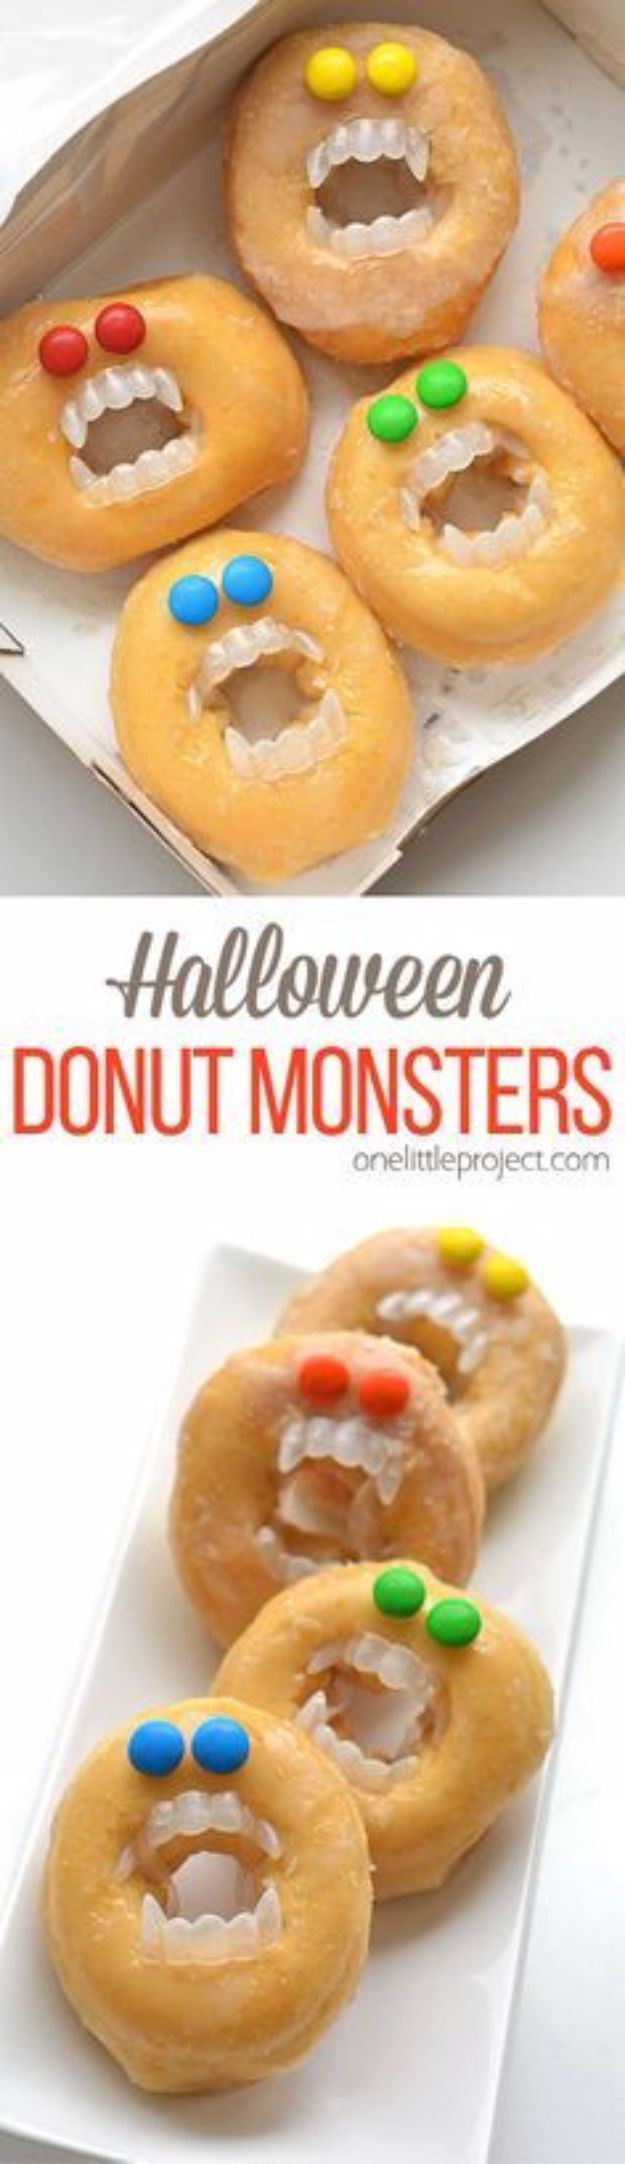 Best Halloween Party Snacks - Halloween Monster Donuts - Healthy Ideas for Kids for School, Teens and Adults - Easy and Quick Recipes and Idea for Dips, Chips, Spooky Cookies and Treats - Appetizers and Finger Foods Made With Vegetables, No Candy, Cheap Food, Scary DIY Party Foods With Step by Step Tutorials #halloween #halloweenrecipes #halloweenparty